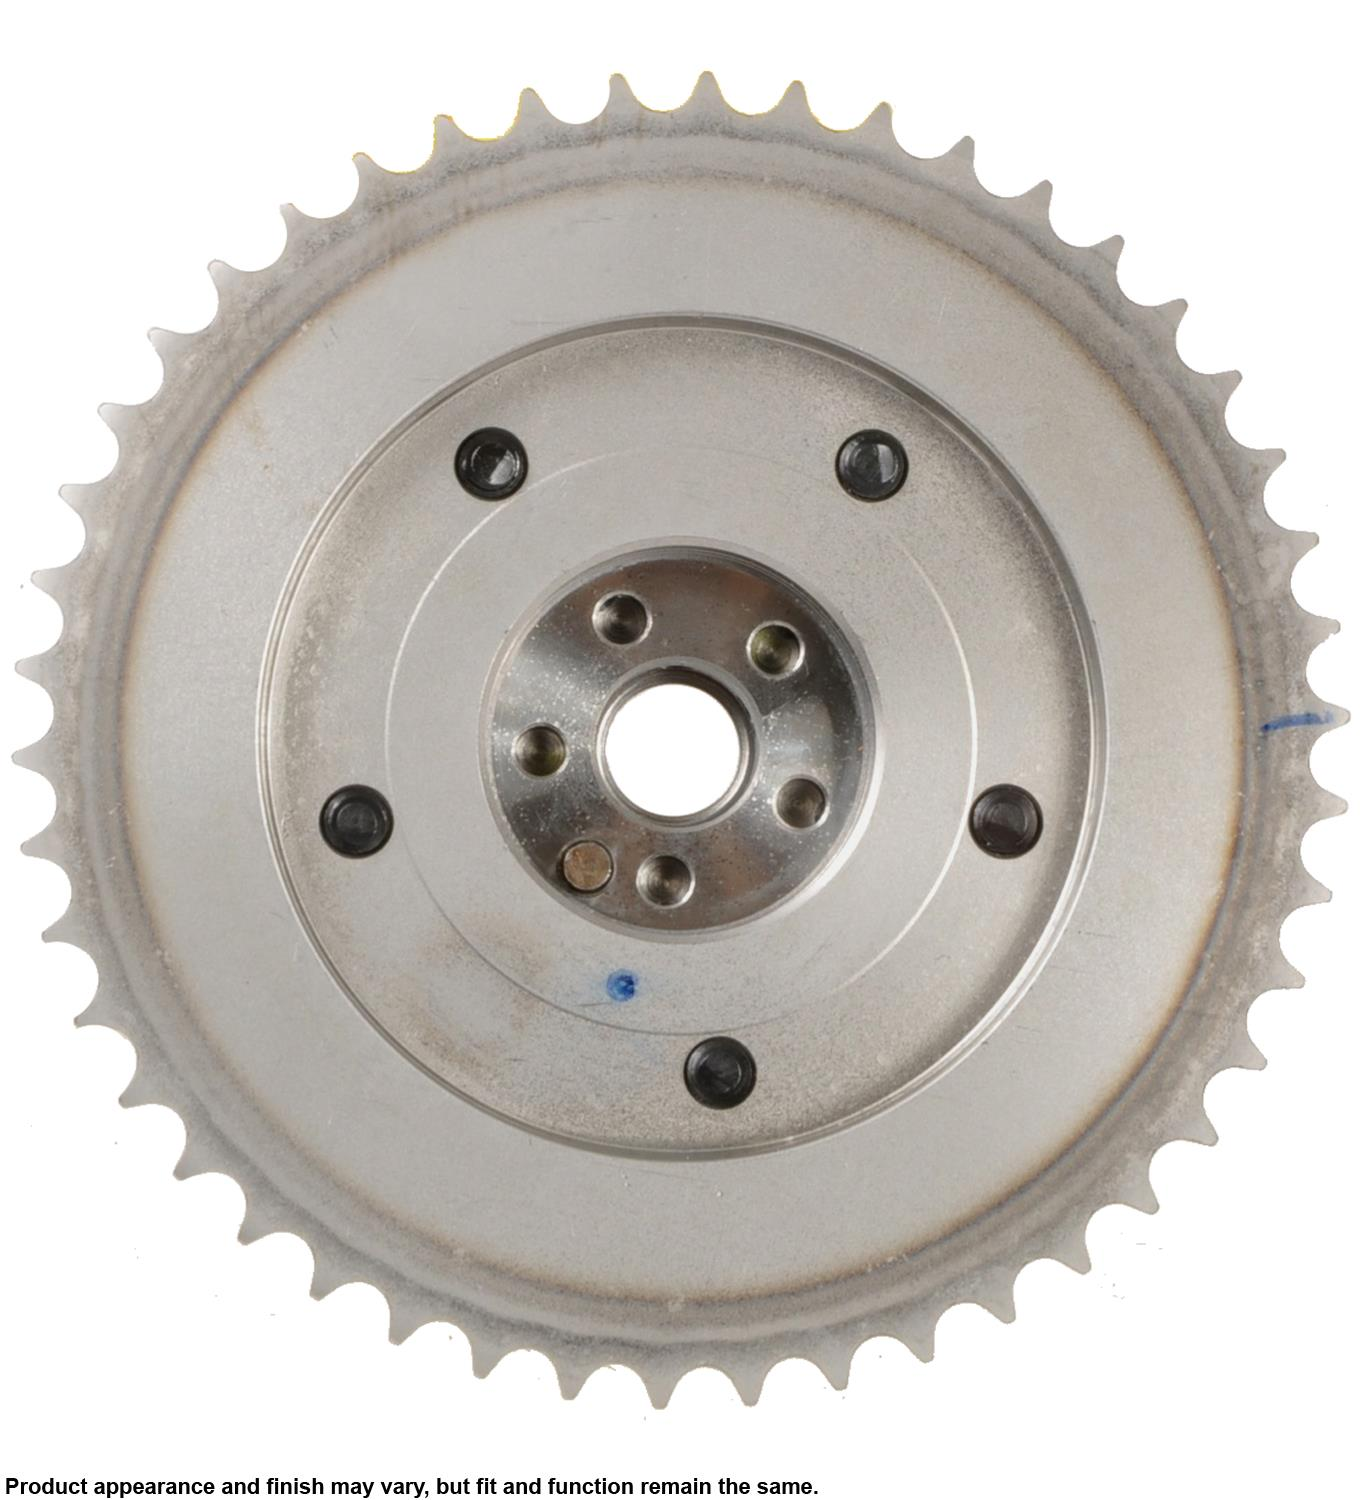 Engine Variable Valve Timing (VVT) Sprocket